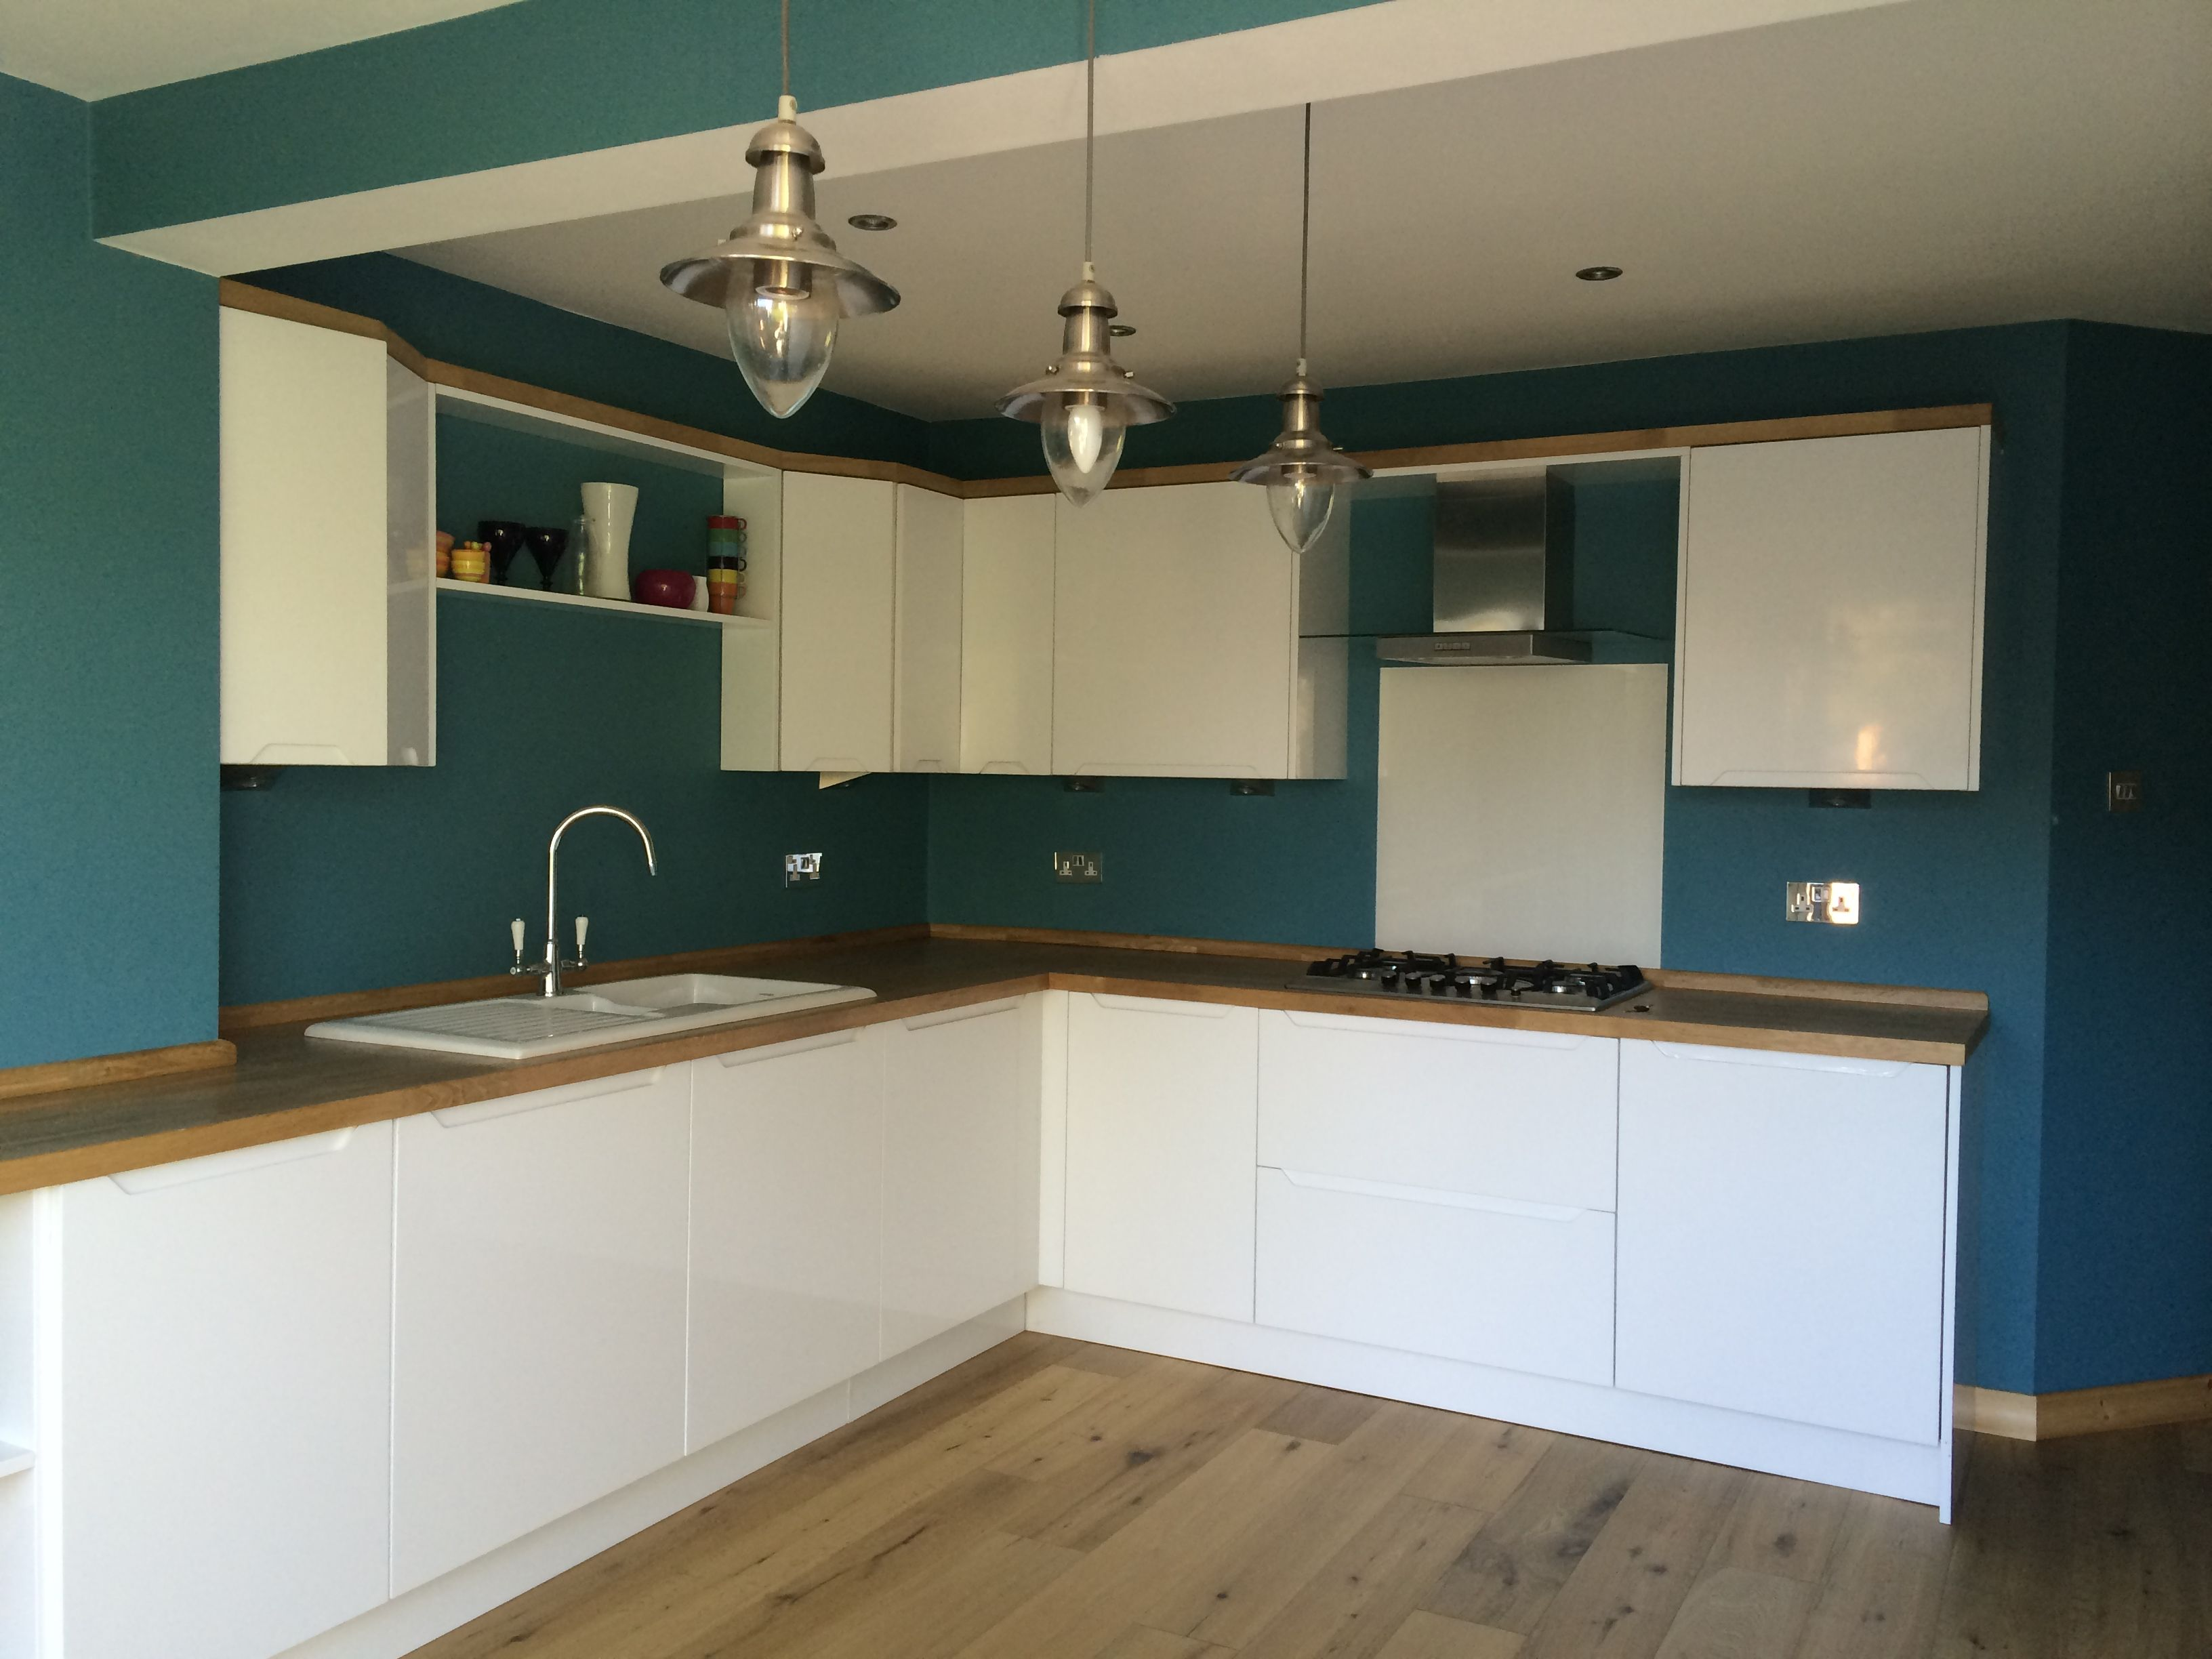 Howdens Kitchen Base Cabinets This Lovely Kitchen Has High Gloss White Handless Doors